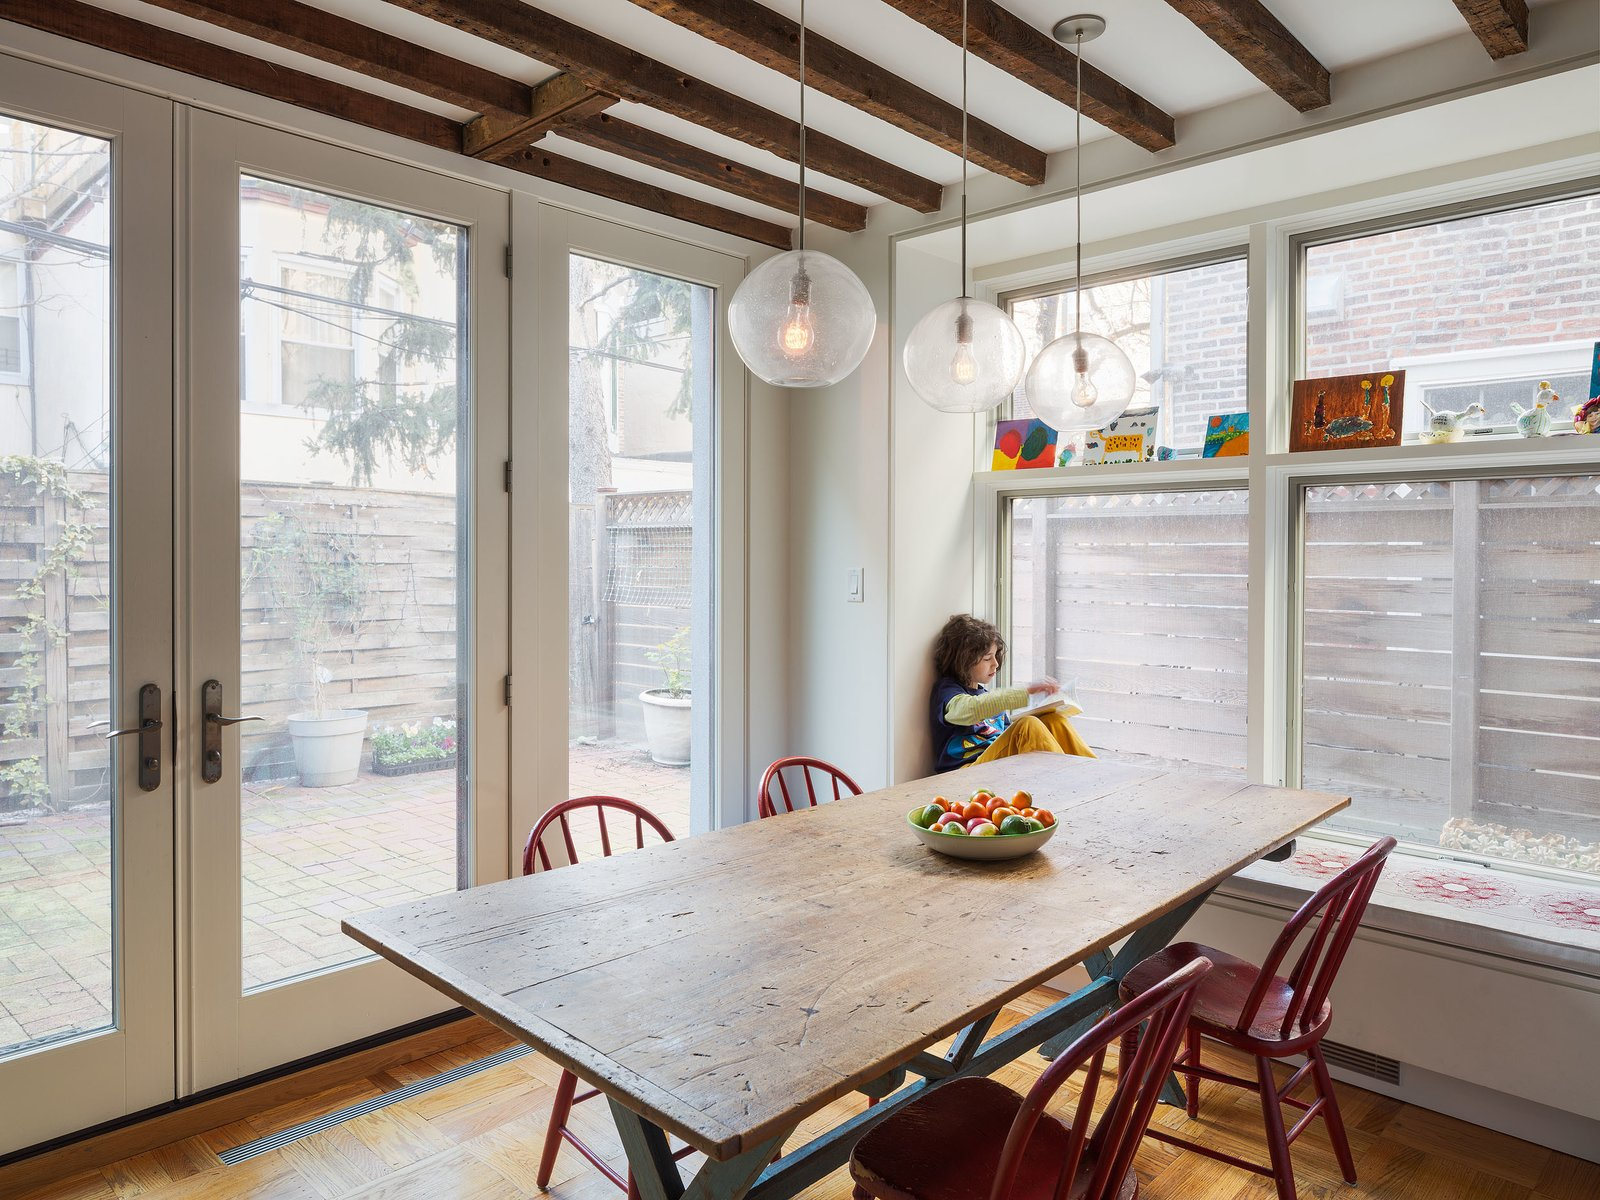 Philadelphia Row House Renovation - Photo 5 of 8 - Dark beams contrast the glazing that fills the dining area with light, continuing the home's historic/modern mix.